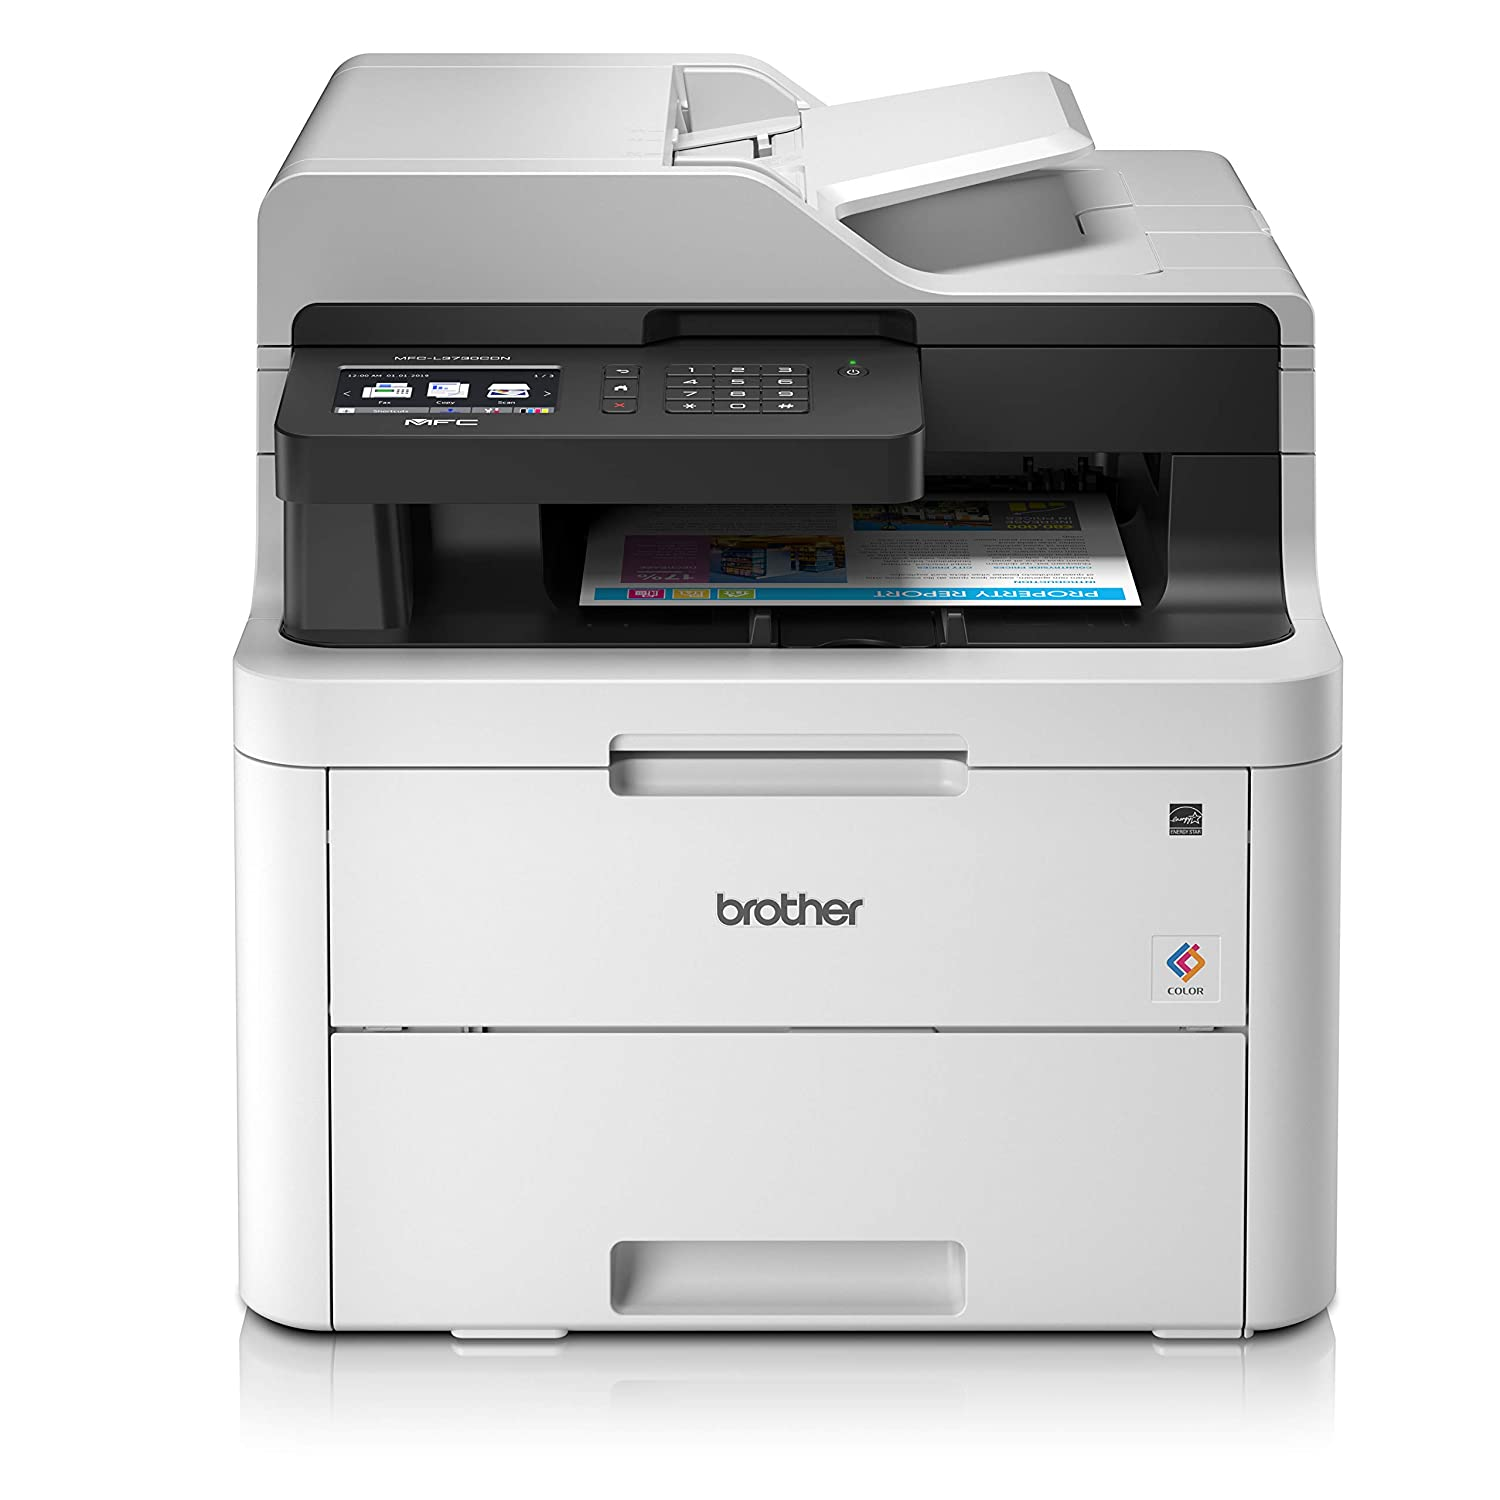 Brother MFC-L3730CDN A4 Colour Laser Printer, PC Connected and Network,  Print, Copy, Scan, Fax and 2 Sided Printing